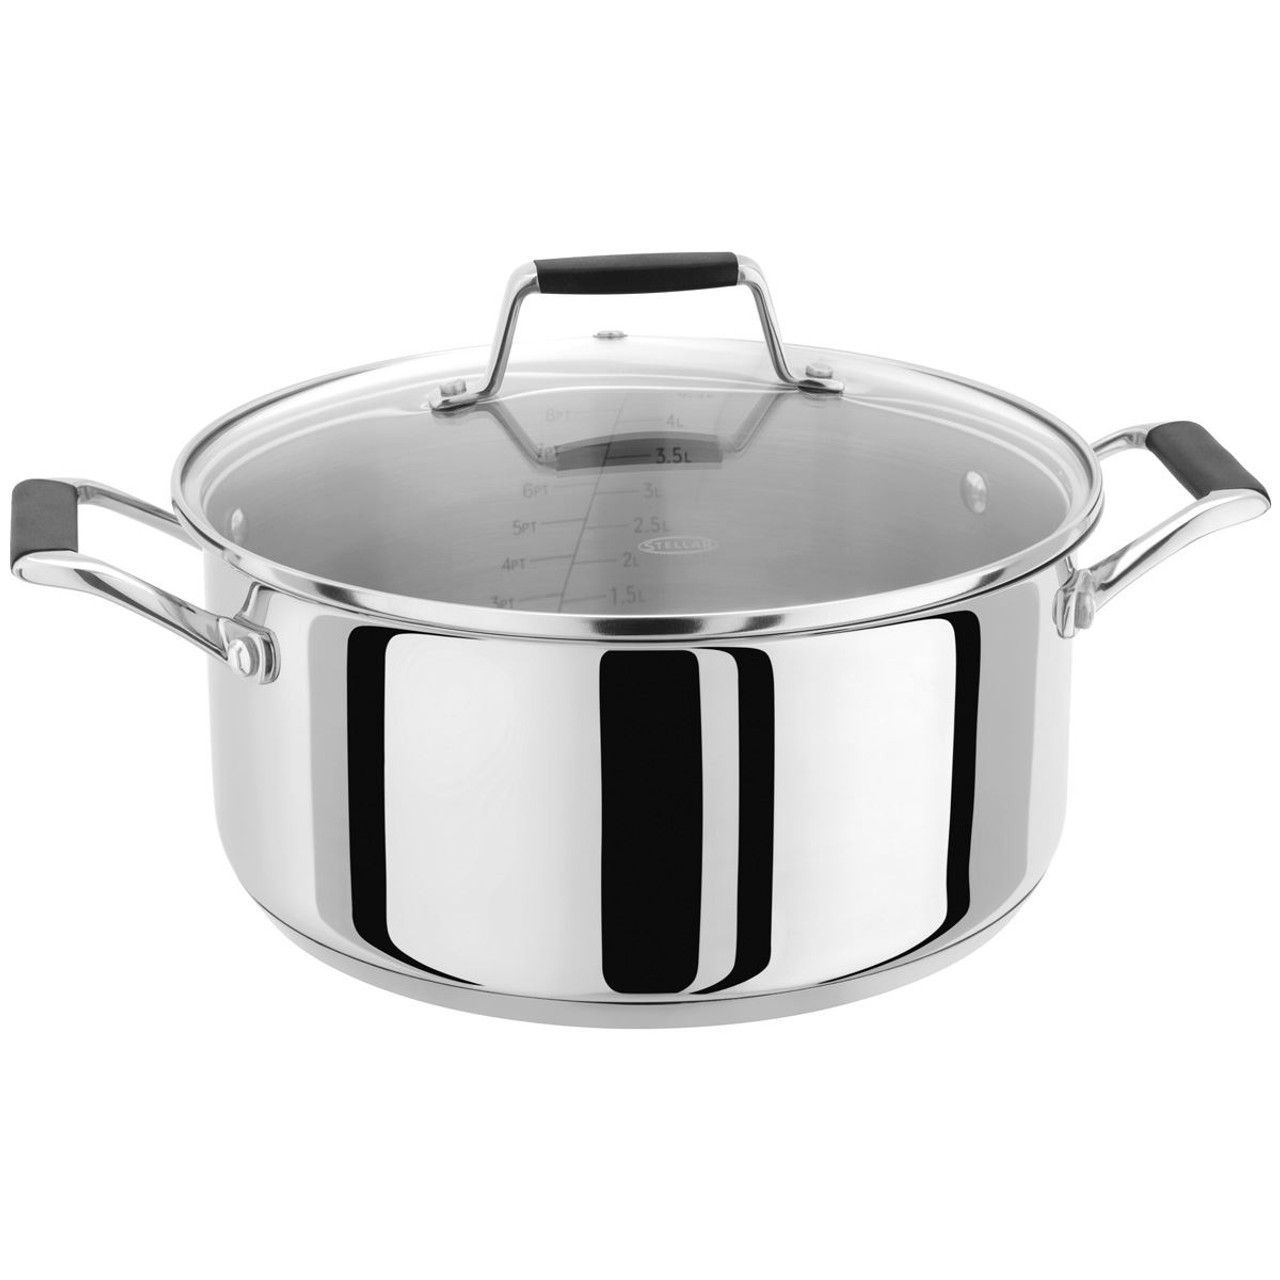 Stellar Induction Casserole Pot with Measuring Guide